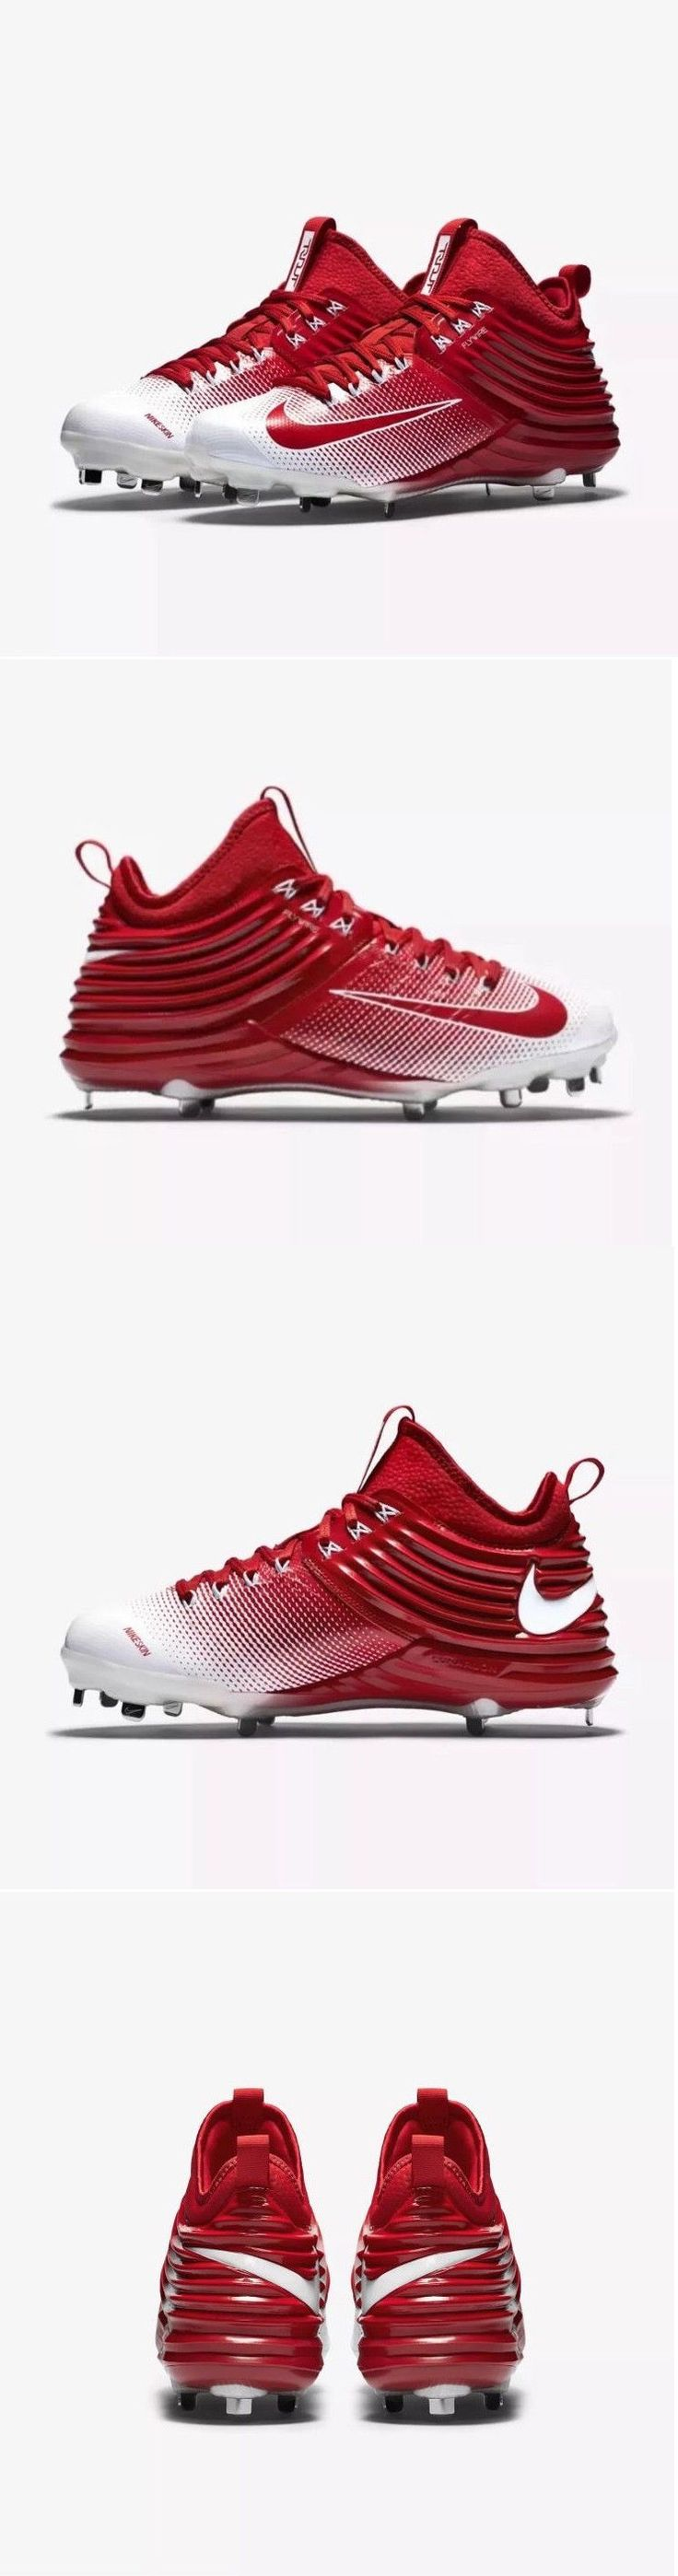 Mens 159059: Nike Lunar Trout 2 Metal Baseball Cleats Mens 10.5-12.5 *New* -> BUY IT NOW ONLY: $59.99 on eBay!